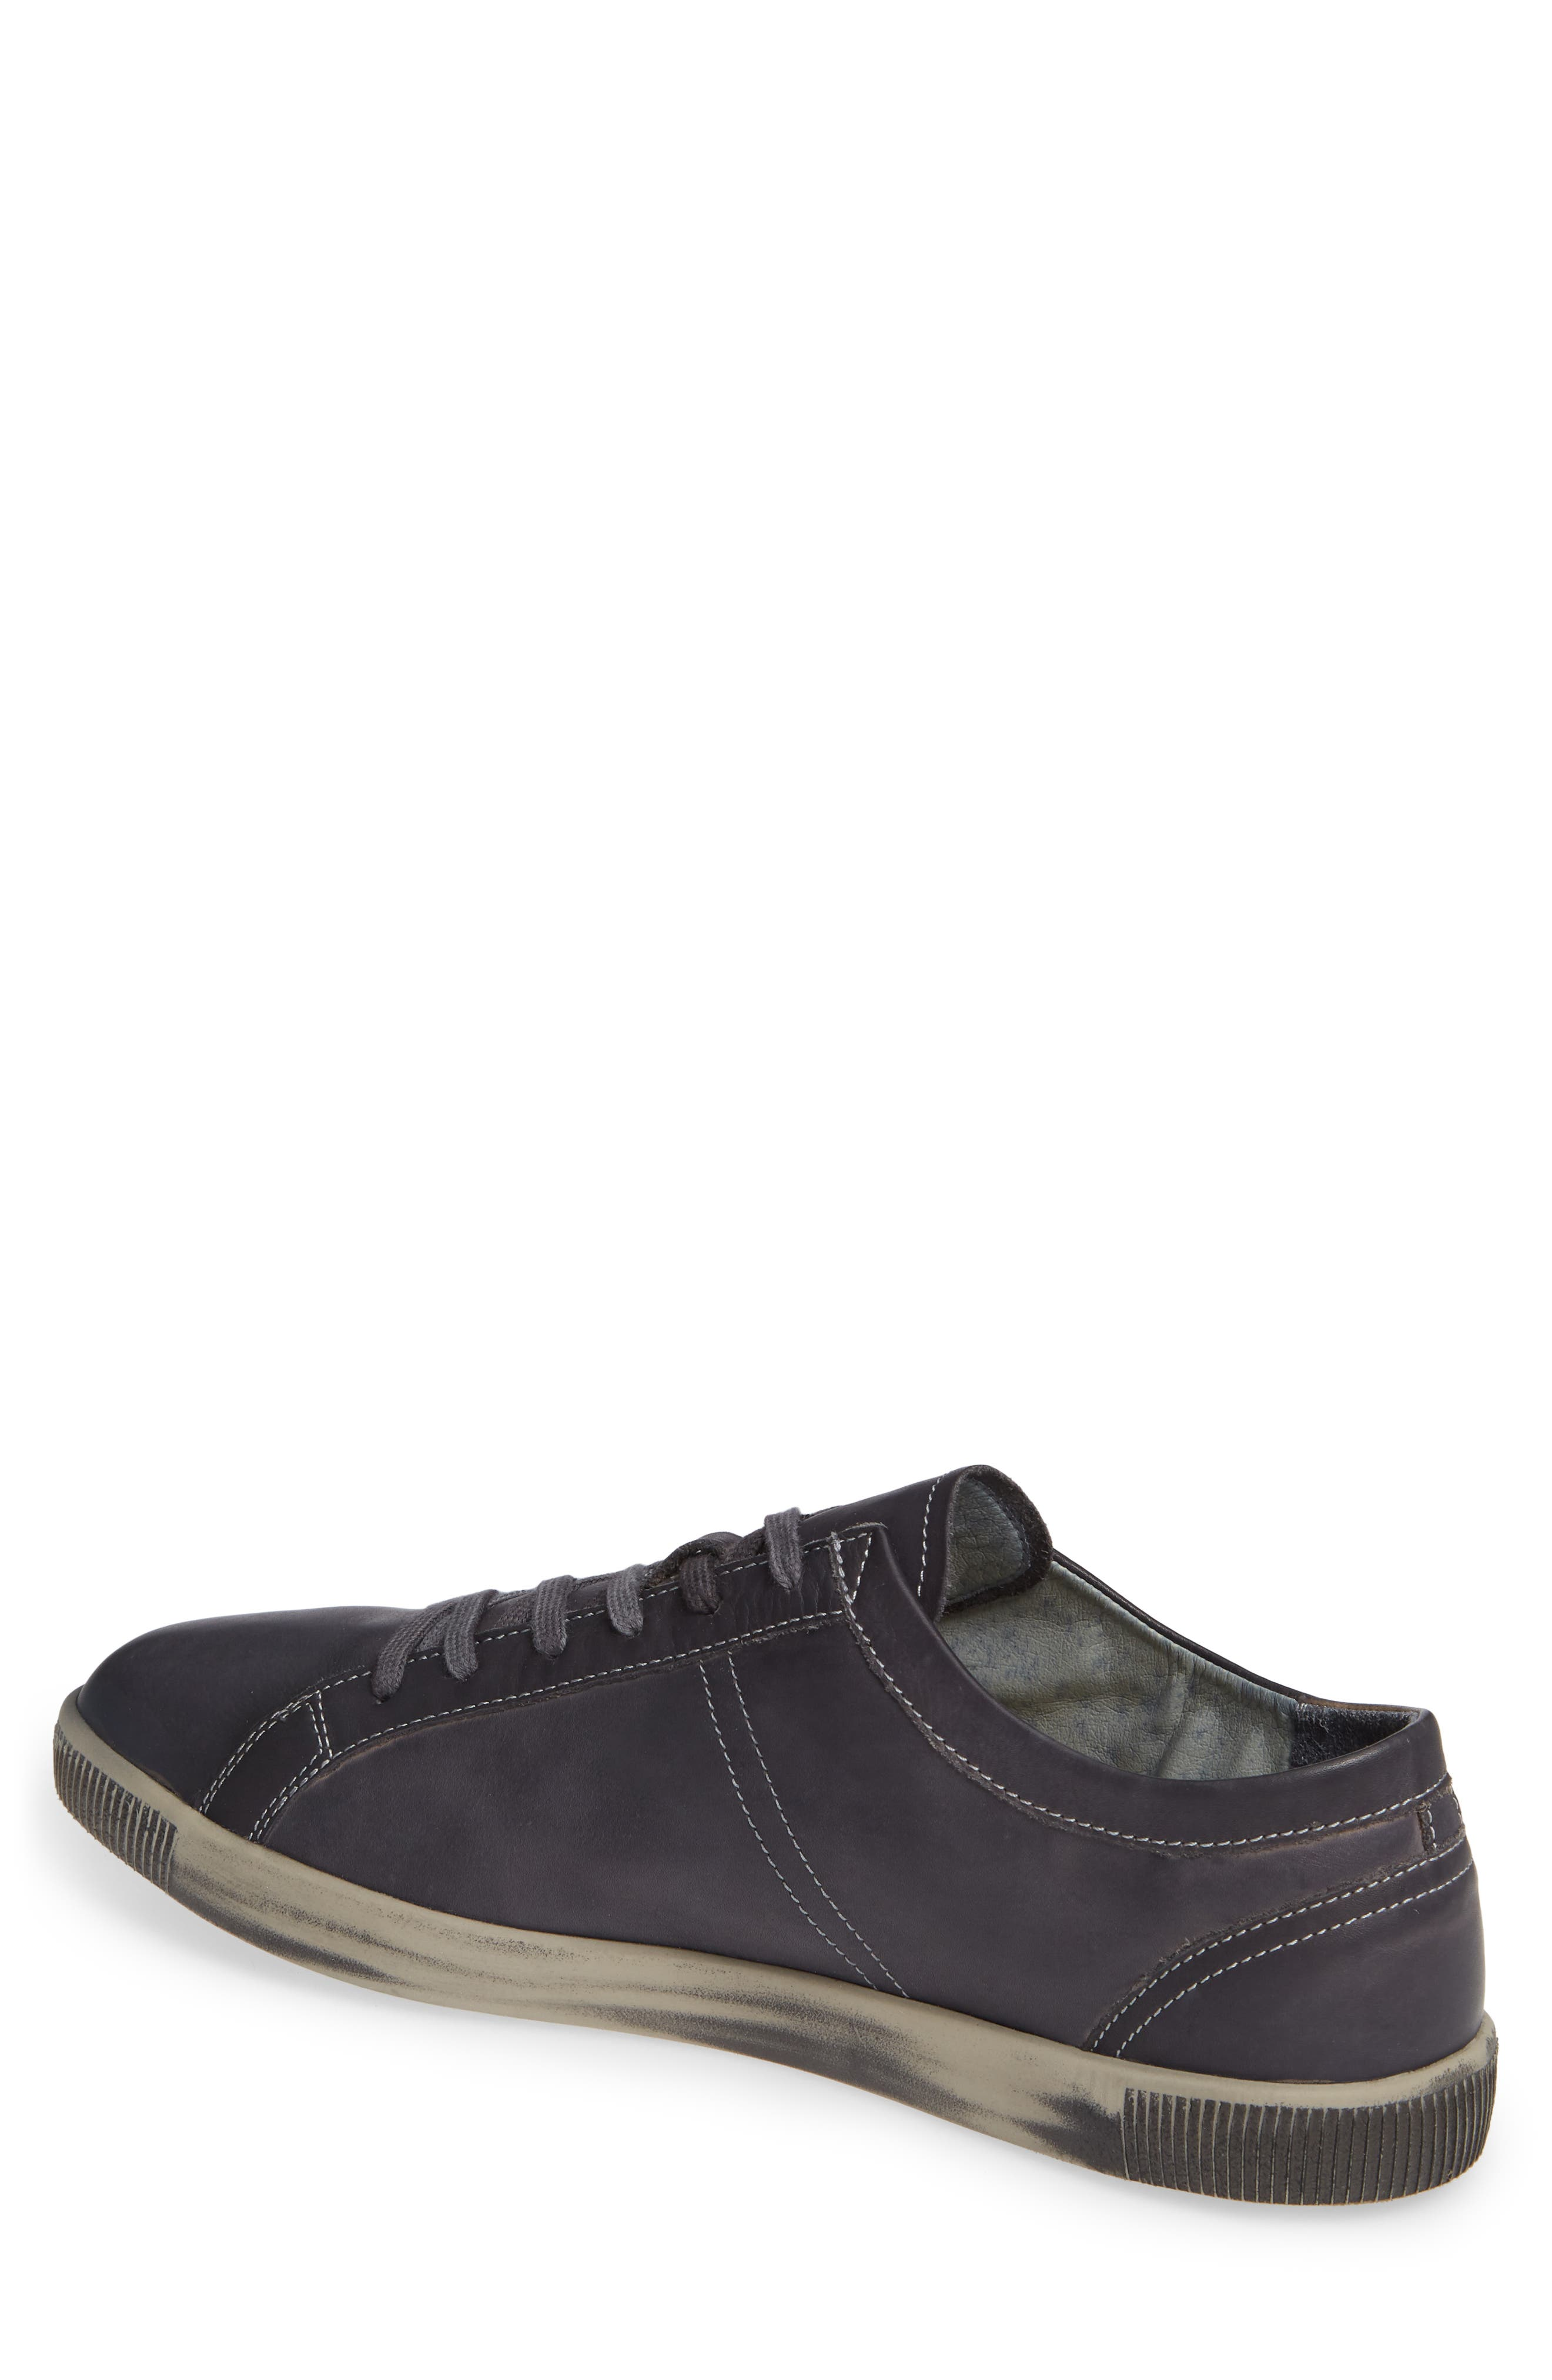 Tom Sneaker,                             Alternate thumbnail 2, color,                             ANTHRACITE WASHED LEATHER